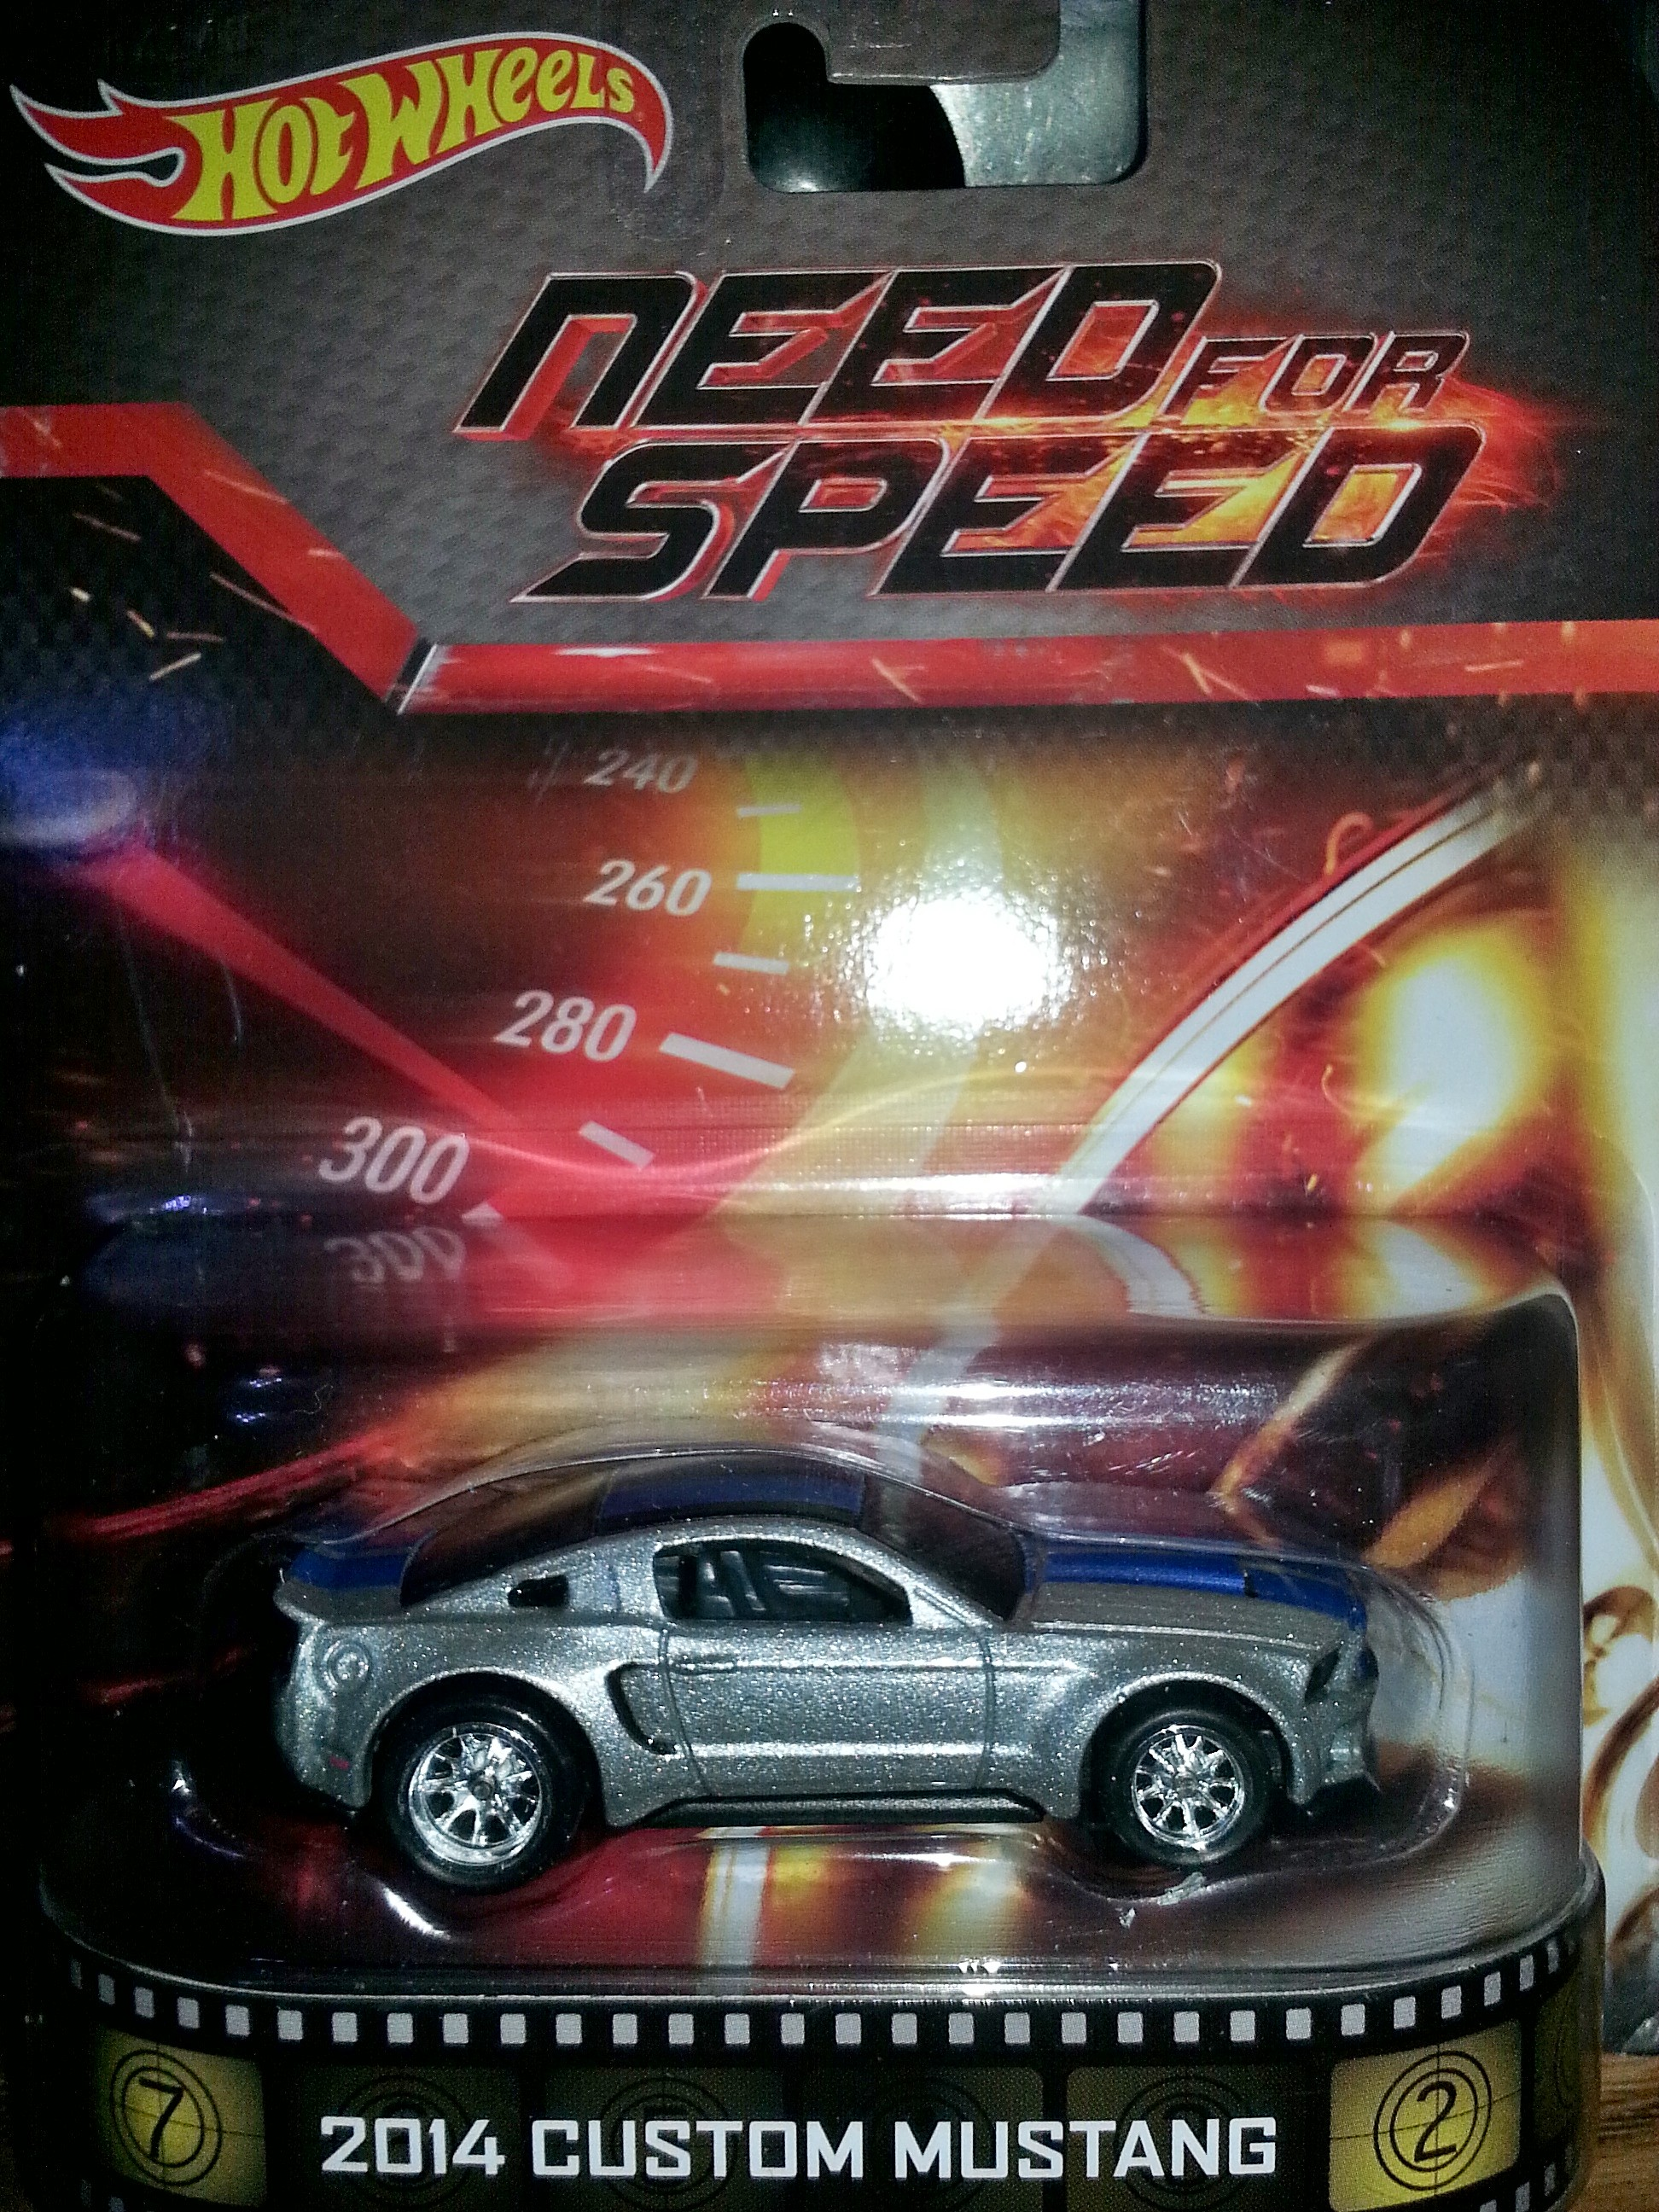 mustang need for speed hot wheels cars